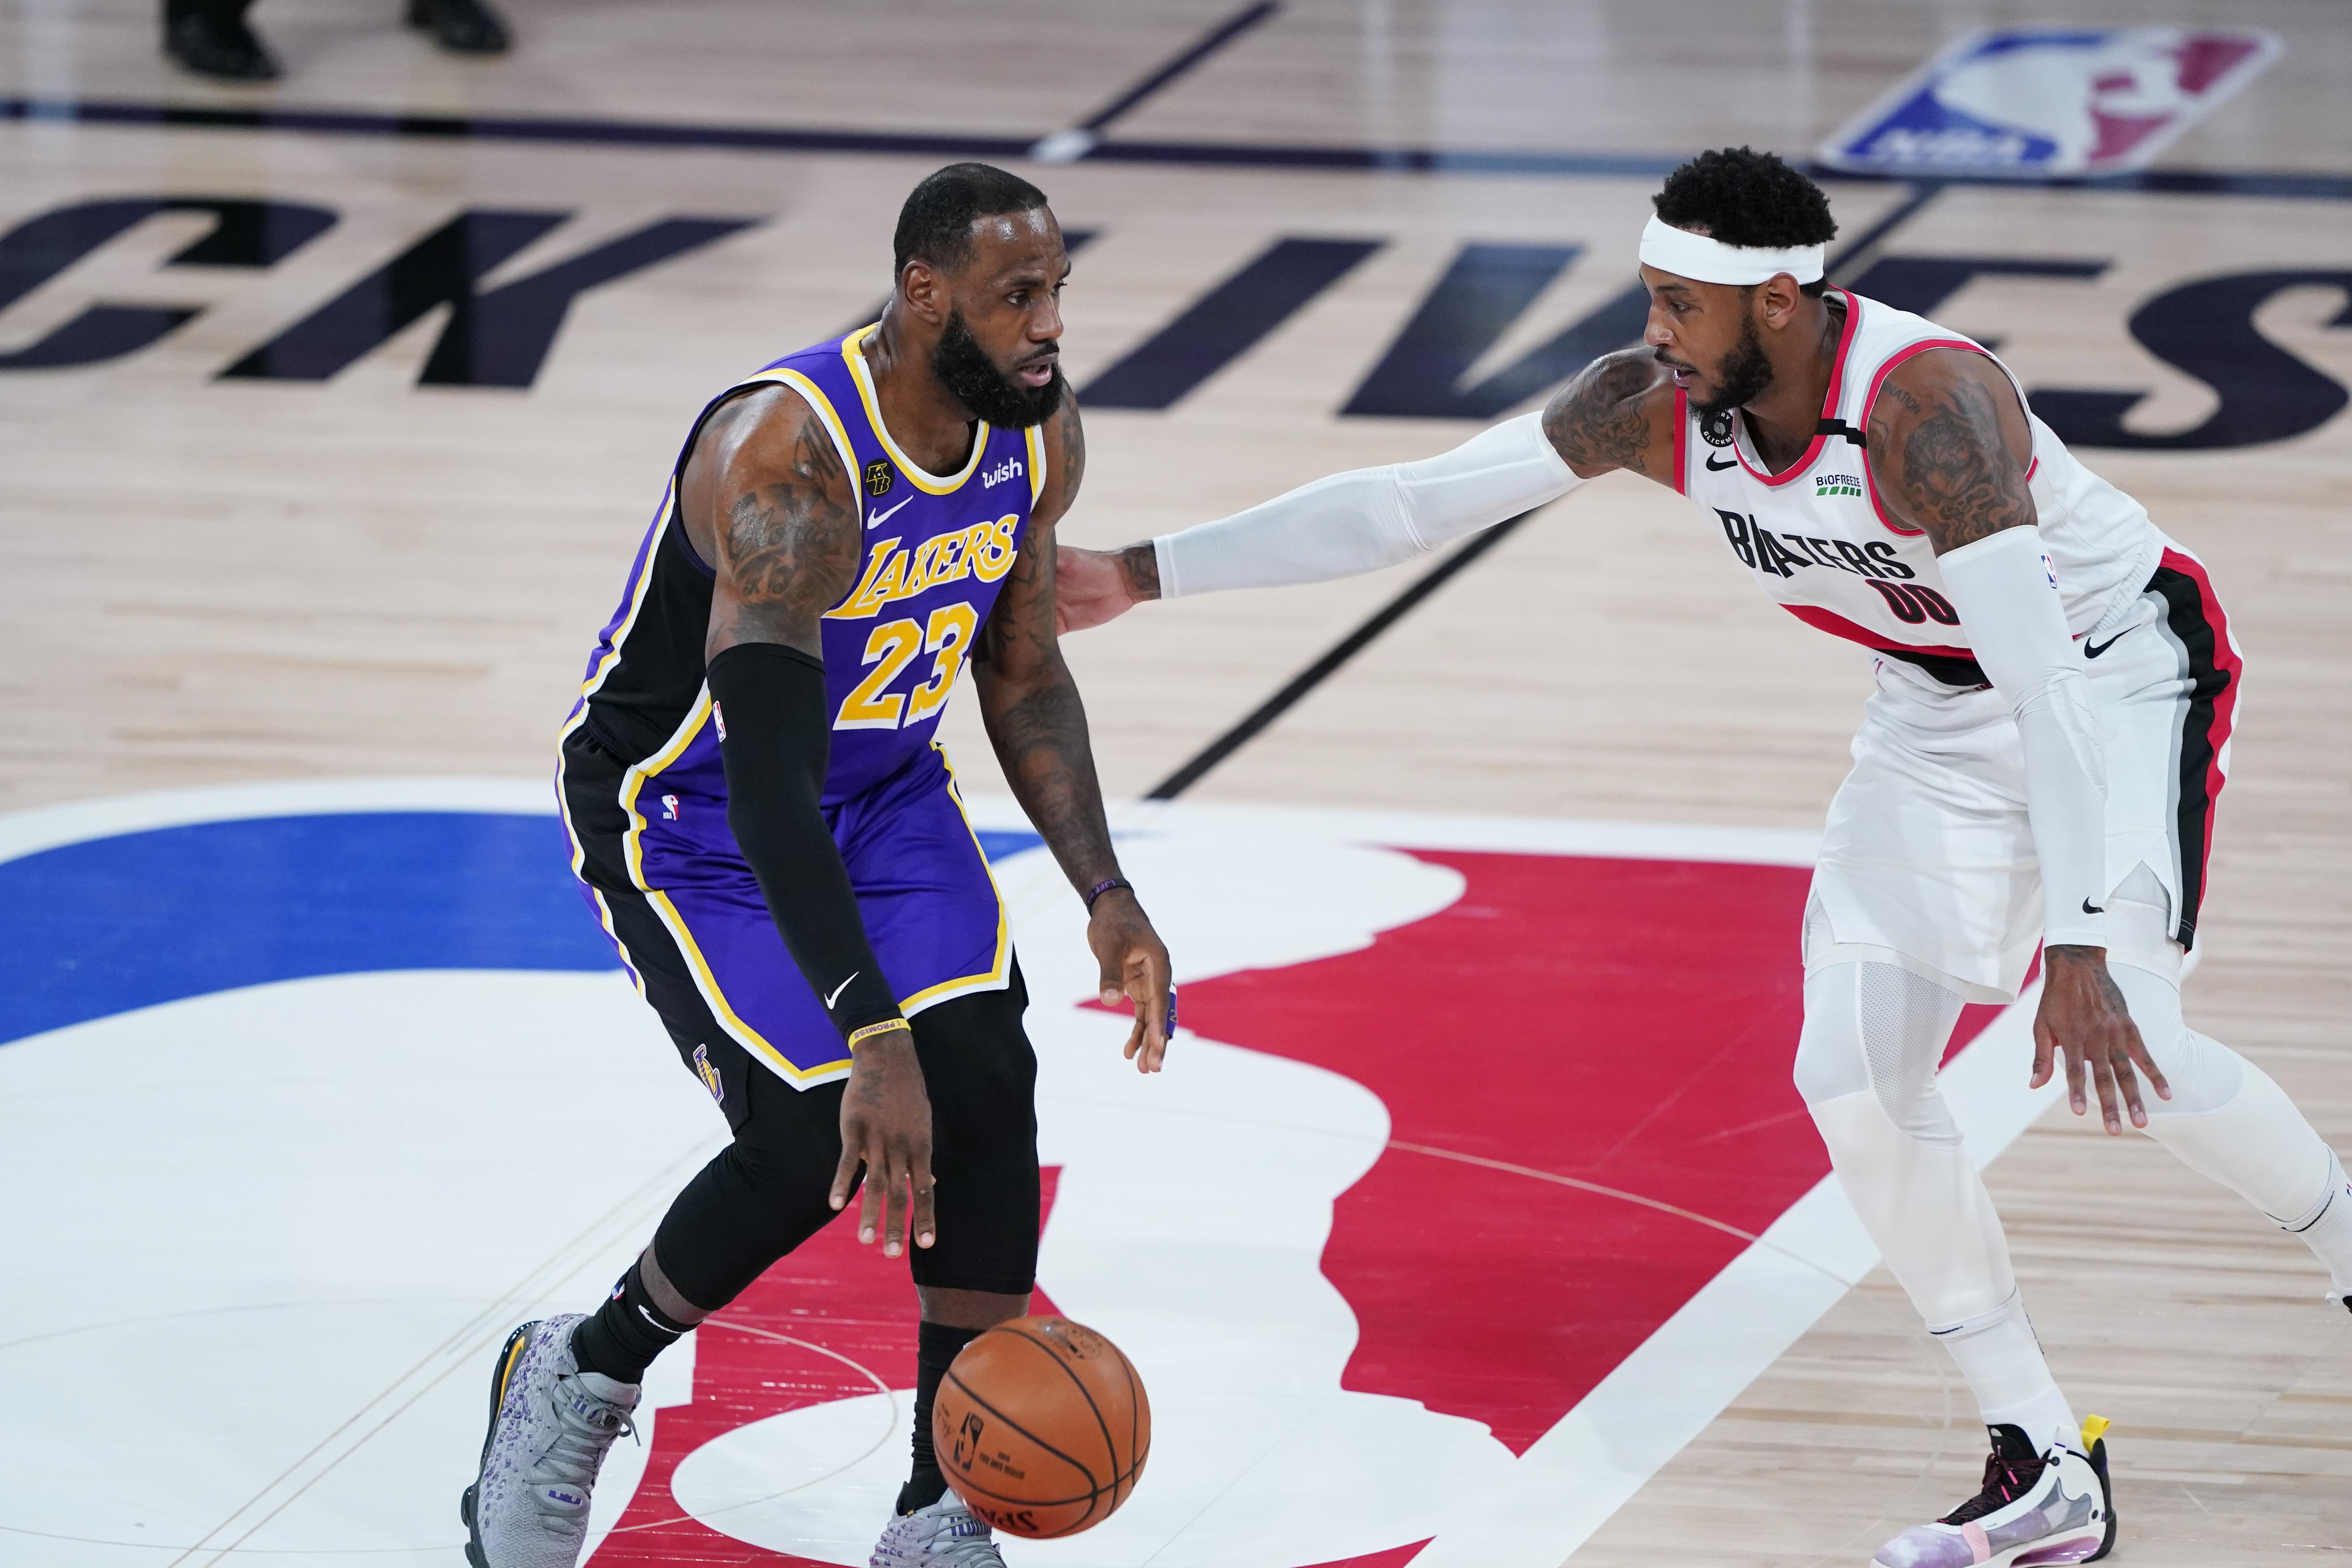 LeBron James #23 of the Los Angeles Lakers drives against Carmelo Anthony #00 of the Portland Trail Blazers